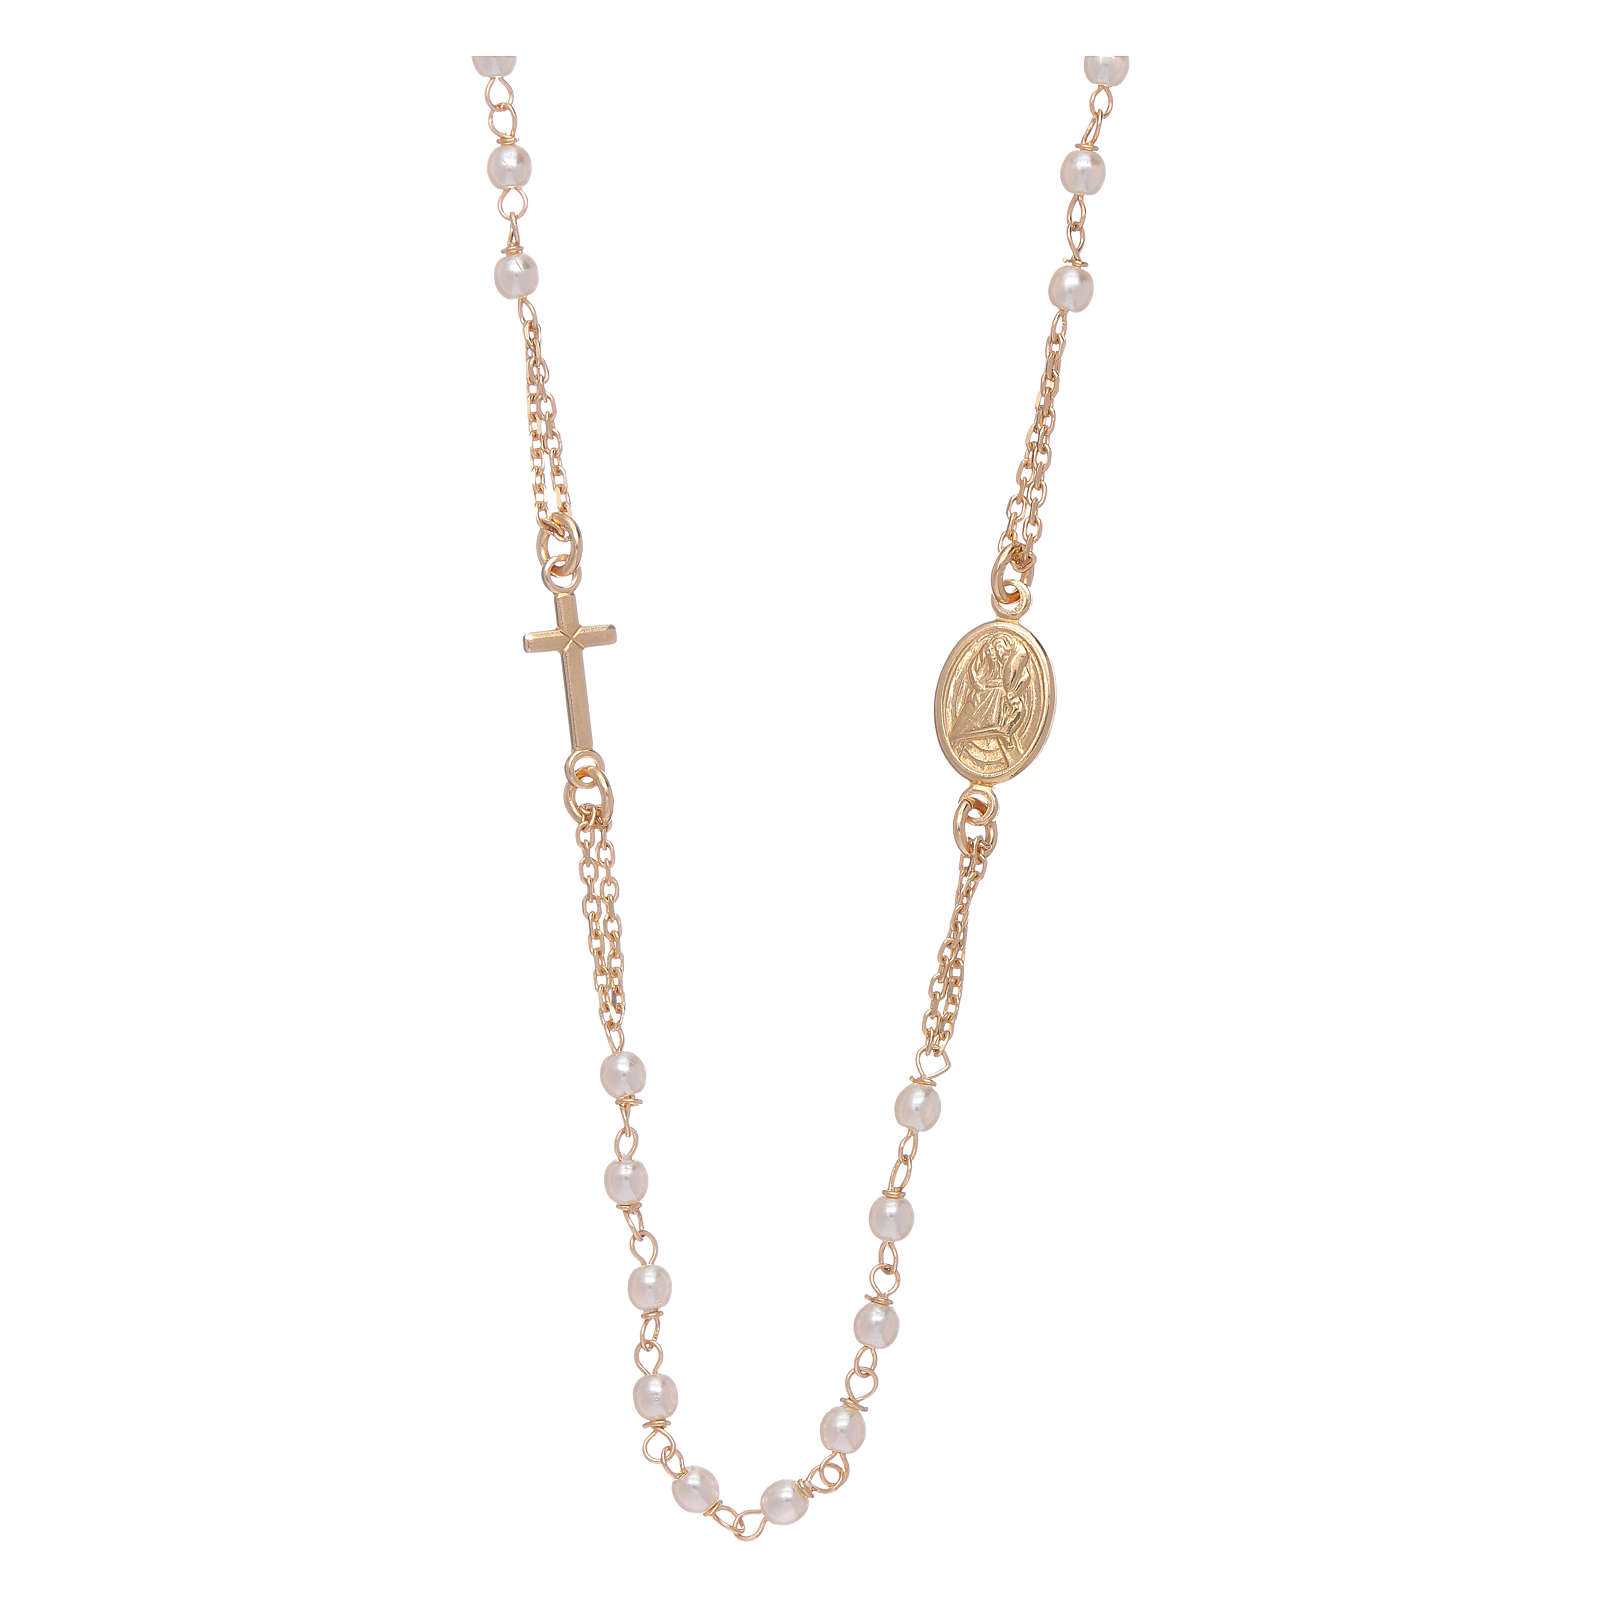 Rosary choker AMEN for Jubilee in 925 sterling silver finished in gold with Swarovski pearls 4